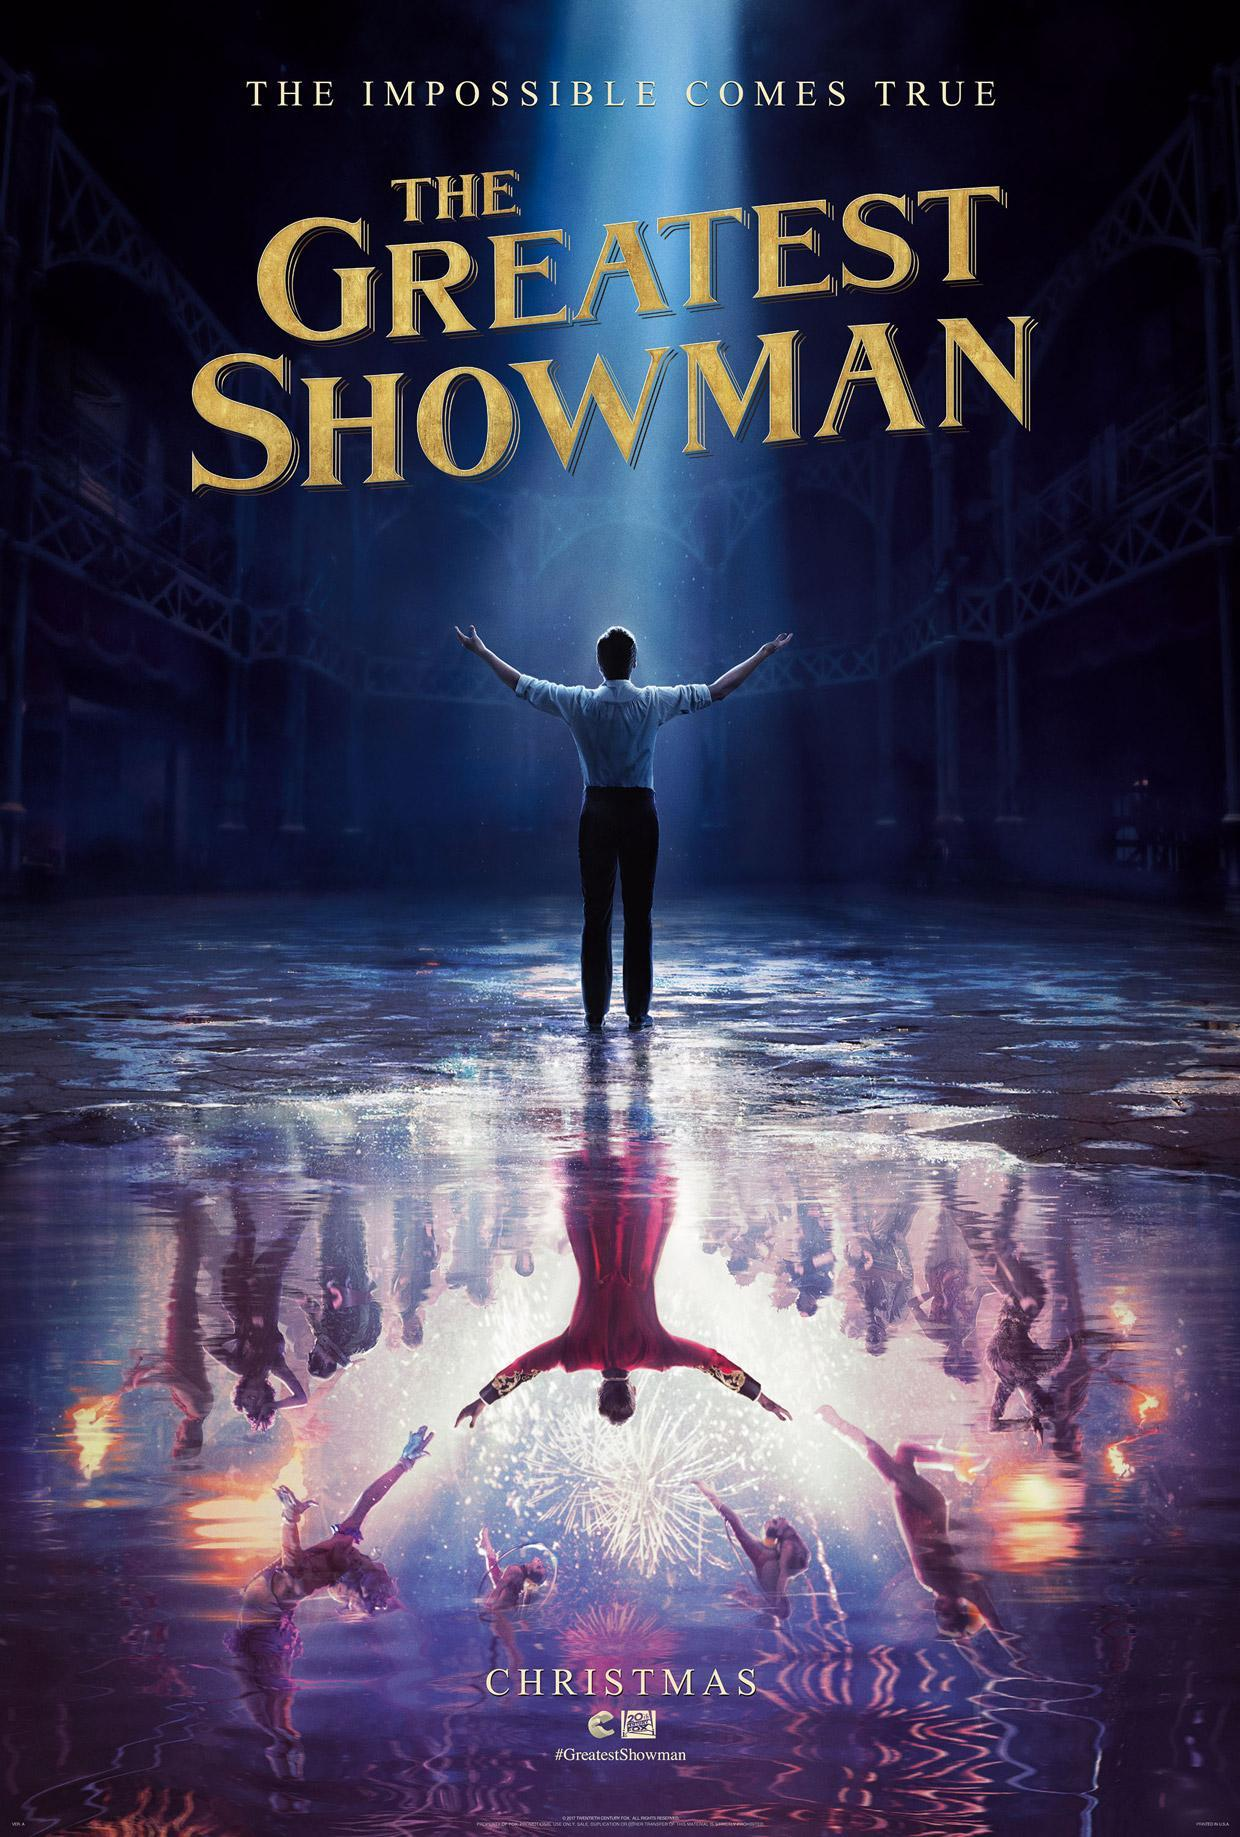 Have you seen The Greatest Showman?